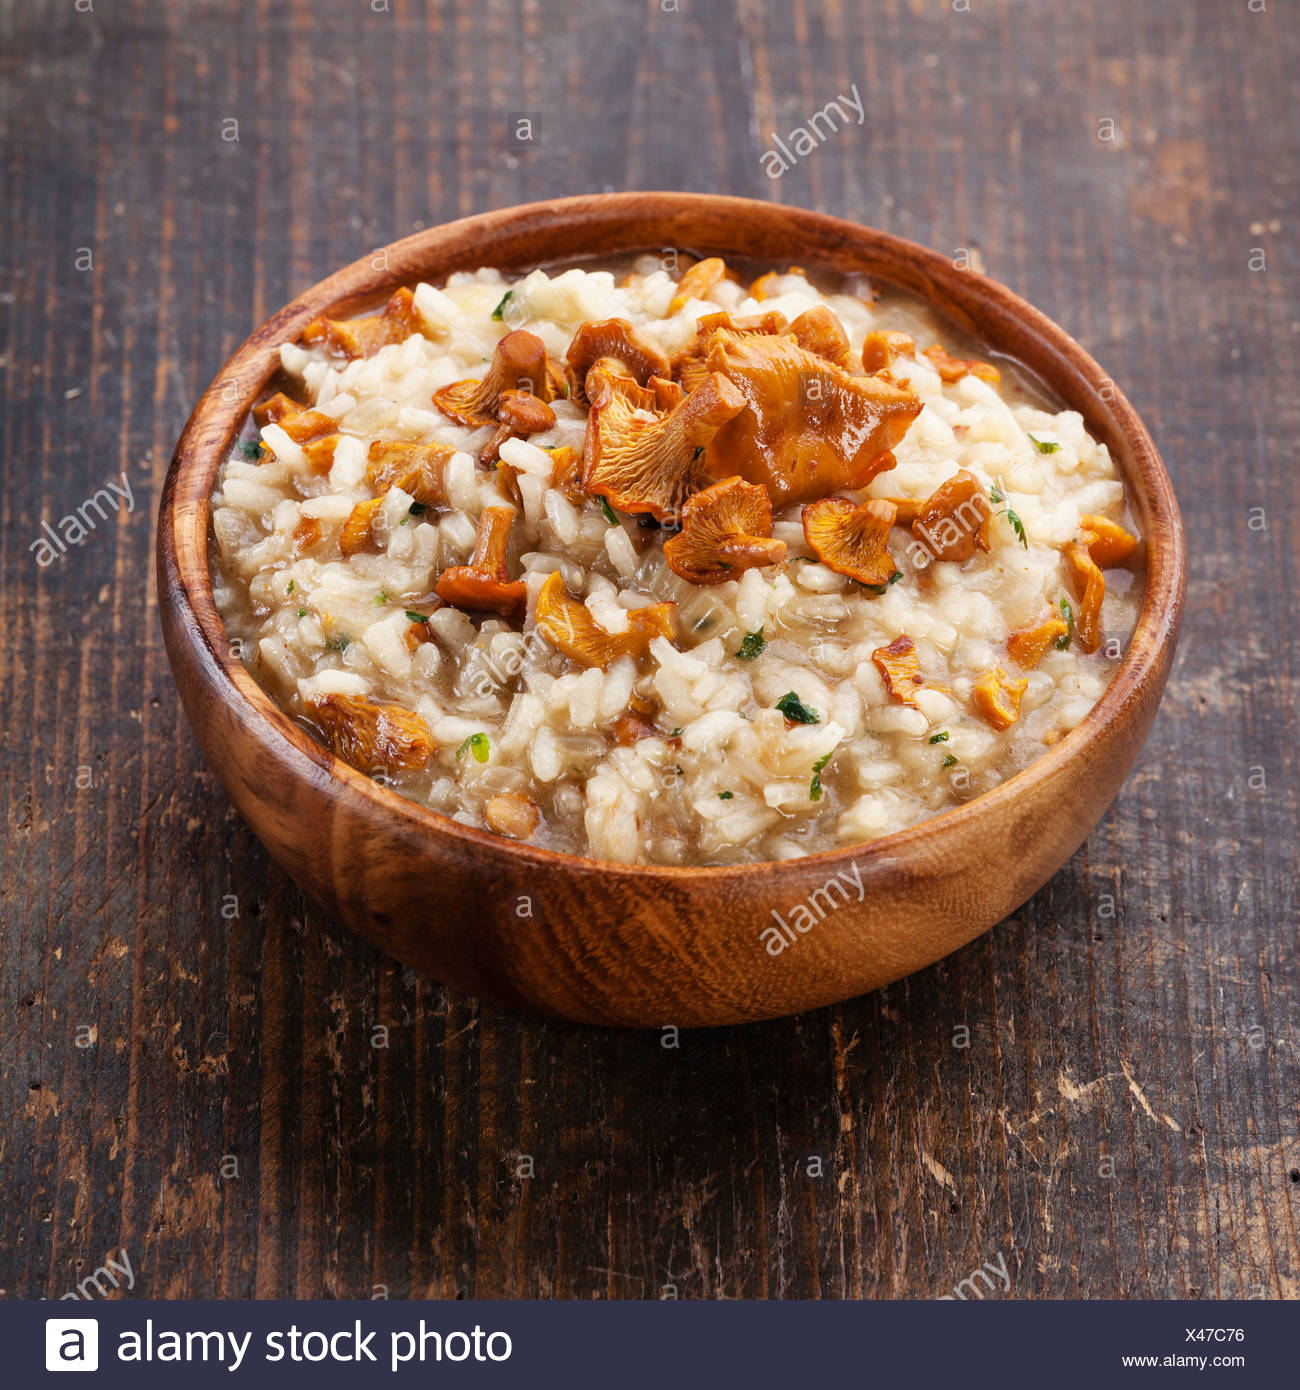 Risotto with chanterelles in wooden bowl - Stock Image